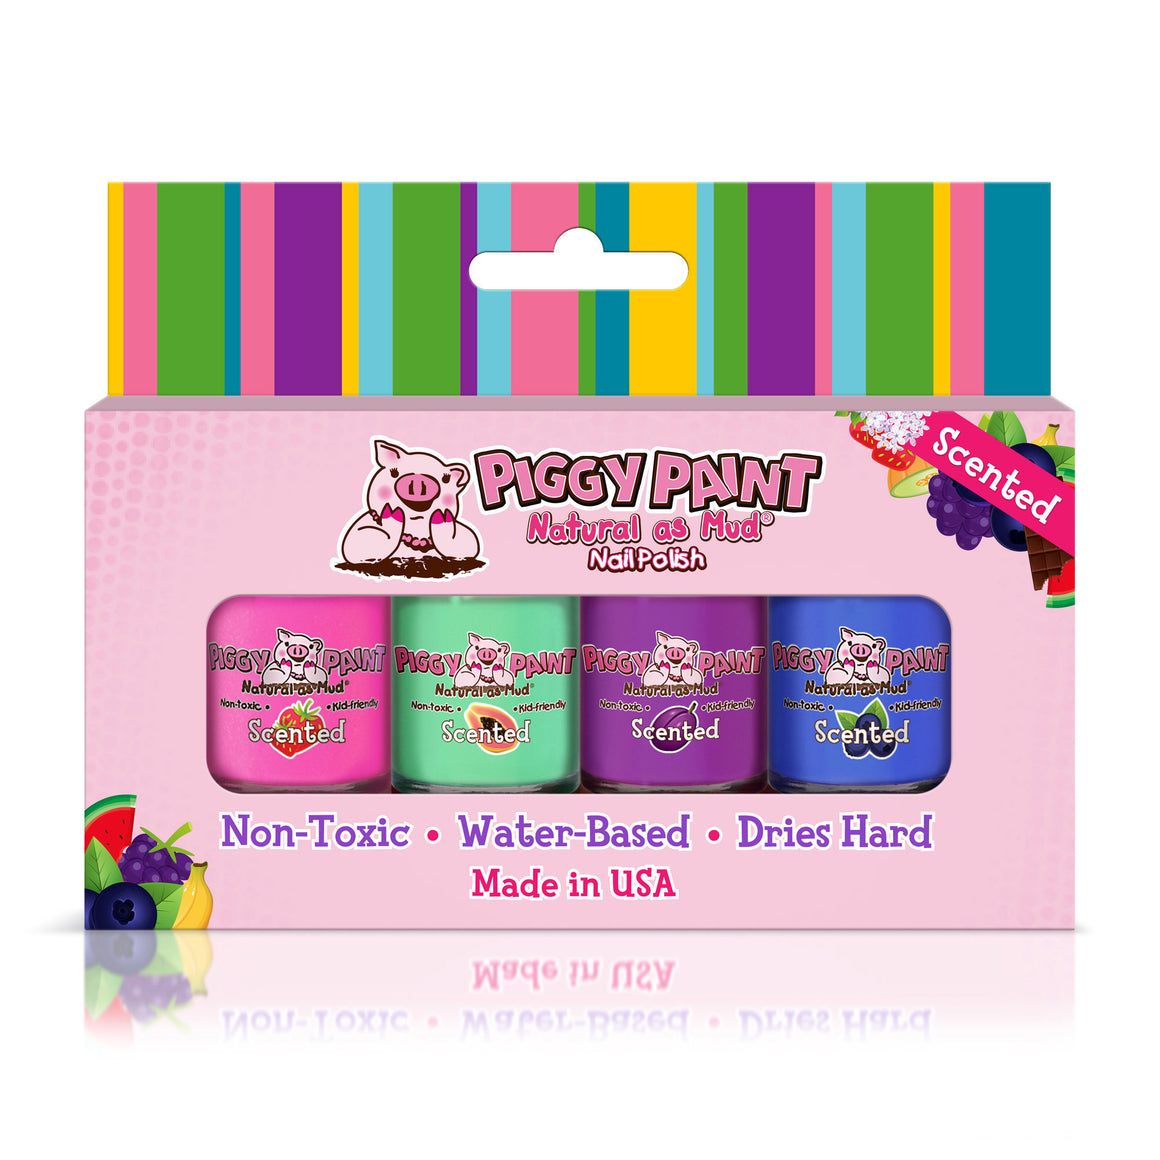 cutie fruity set includes 4- .25 ounces of piggy paint polish in berry go round, shimmy shimmy pop, tutu cool, and dragon tears with nail art set